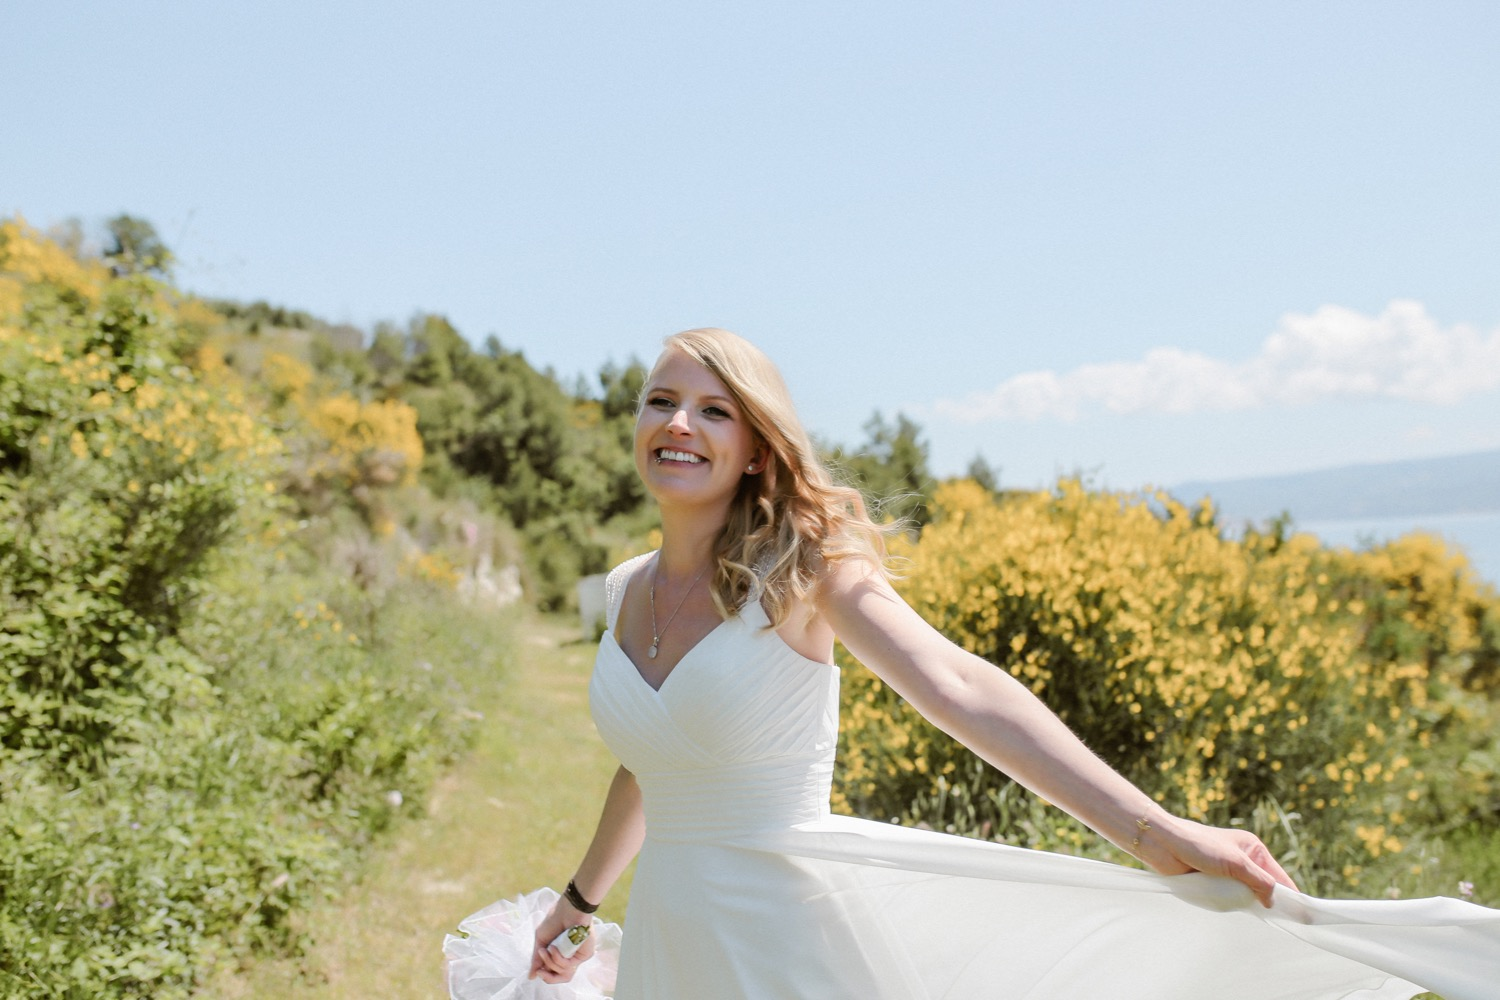 Croatia beach elopement hilke thomas love and ventures photography 56 | Croatia Elopement Photographer and Videographer